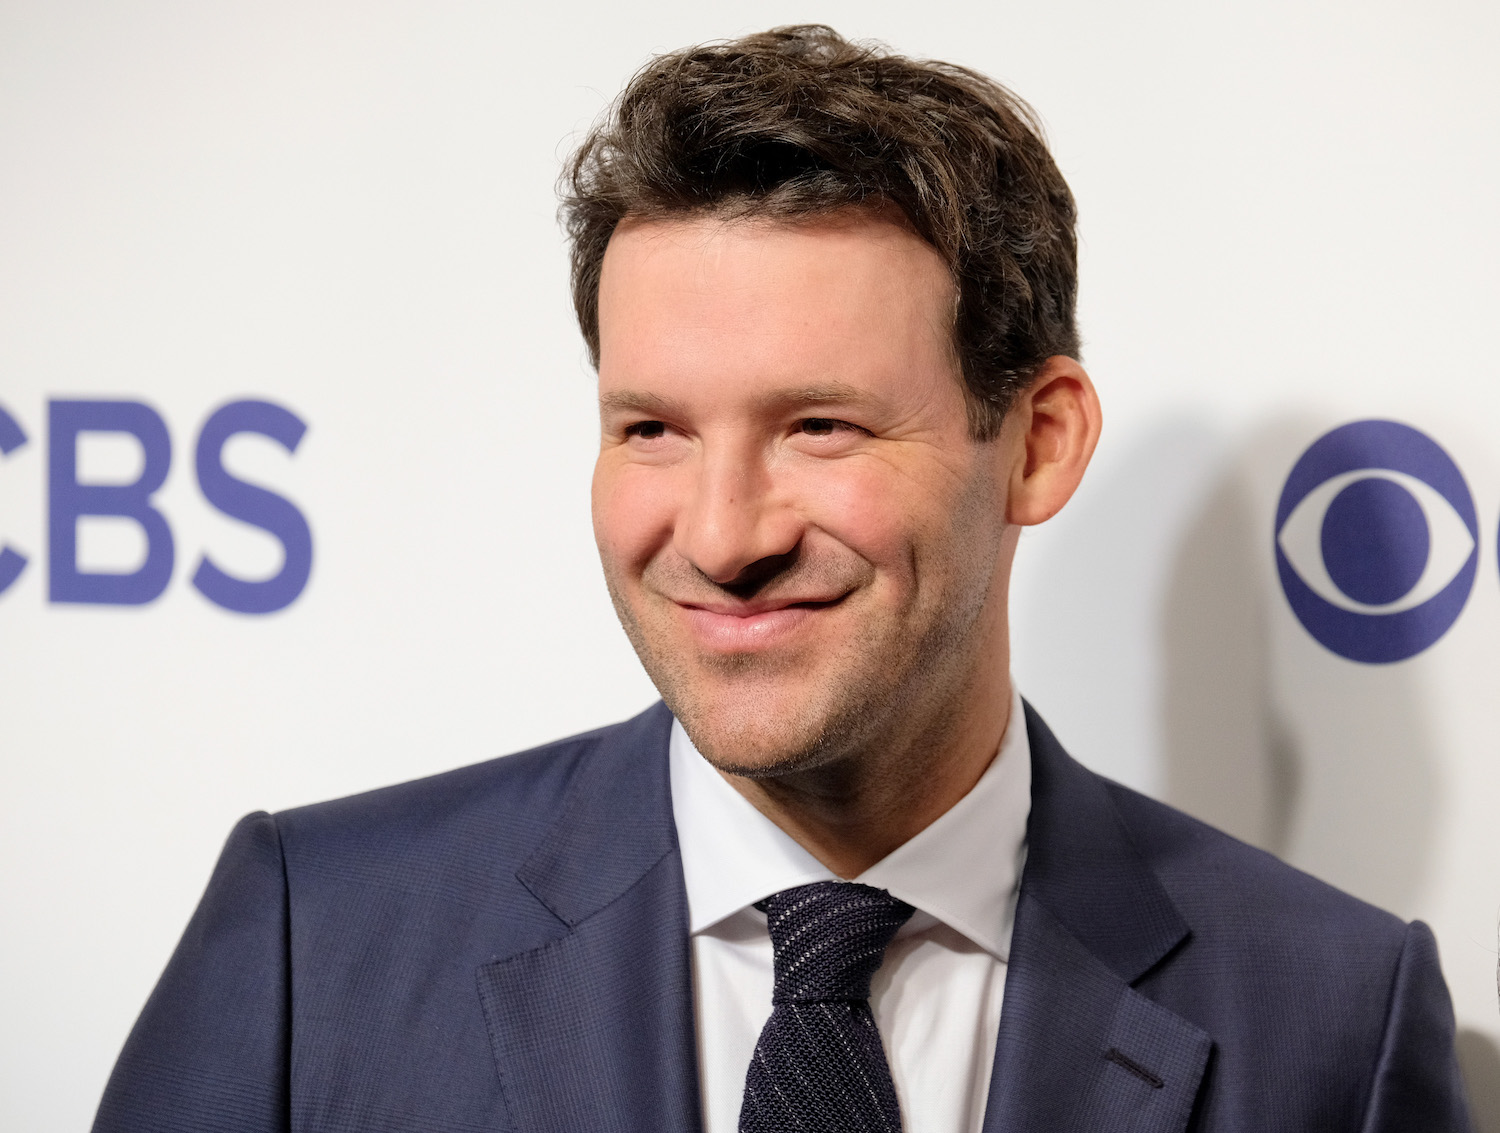 Tony Romo and Stephen Colbert Go Toe-to-Toe in Interview Taking Repeated Shots at Each Other